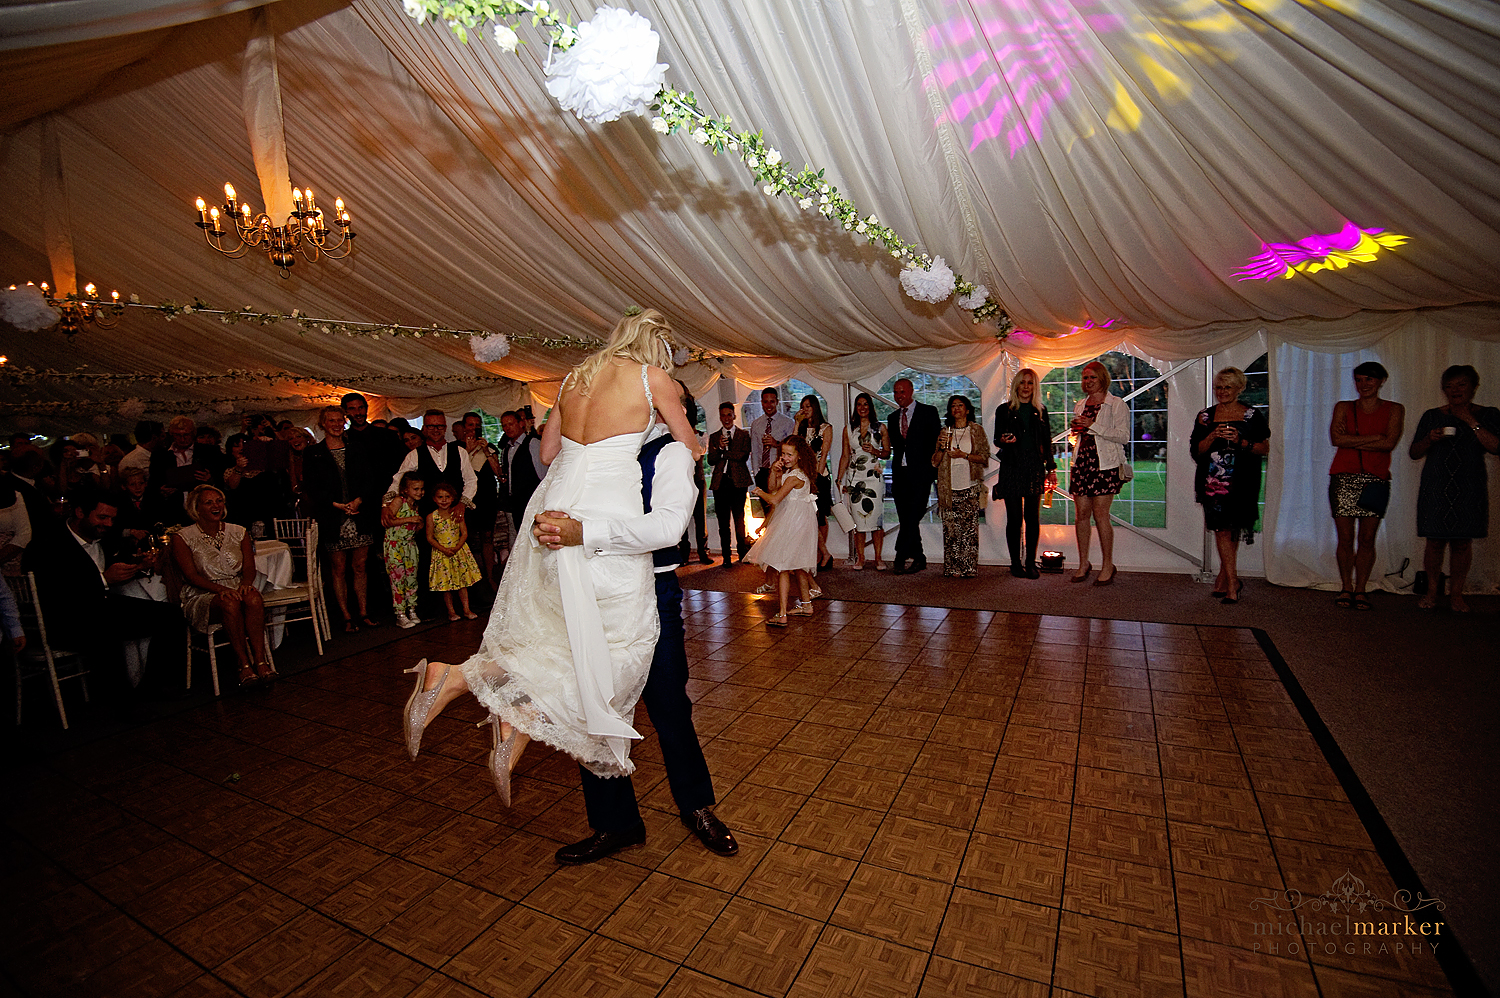 Groom lifting the bride during their first dance at Deer Park wedding in Devon